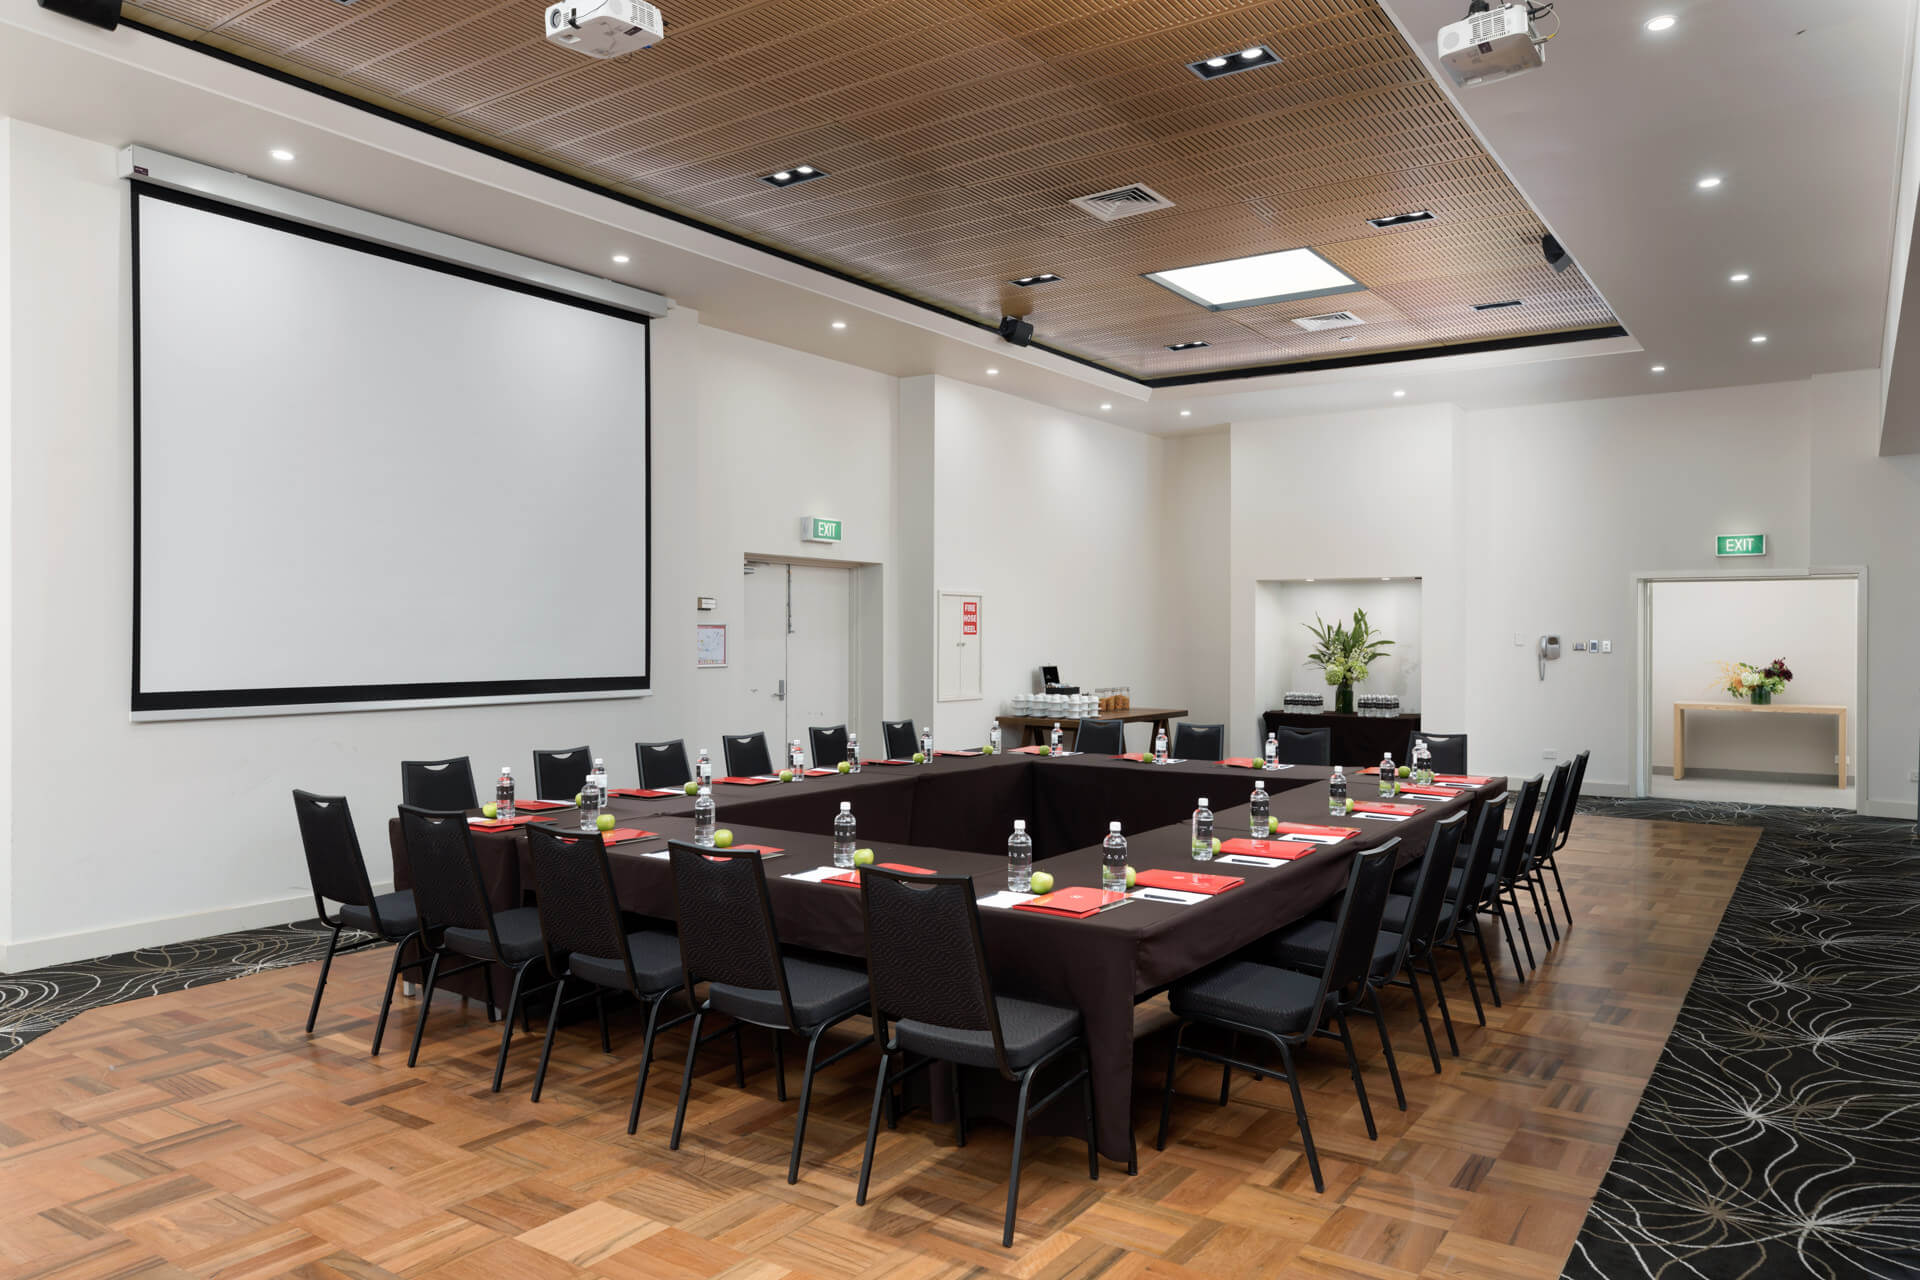 stylish Geelong venue | GEC Geelong Events Centre